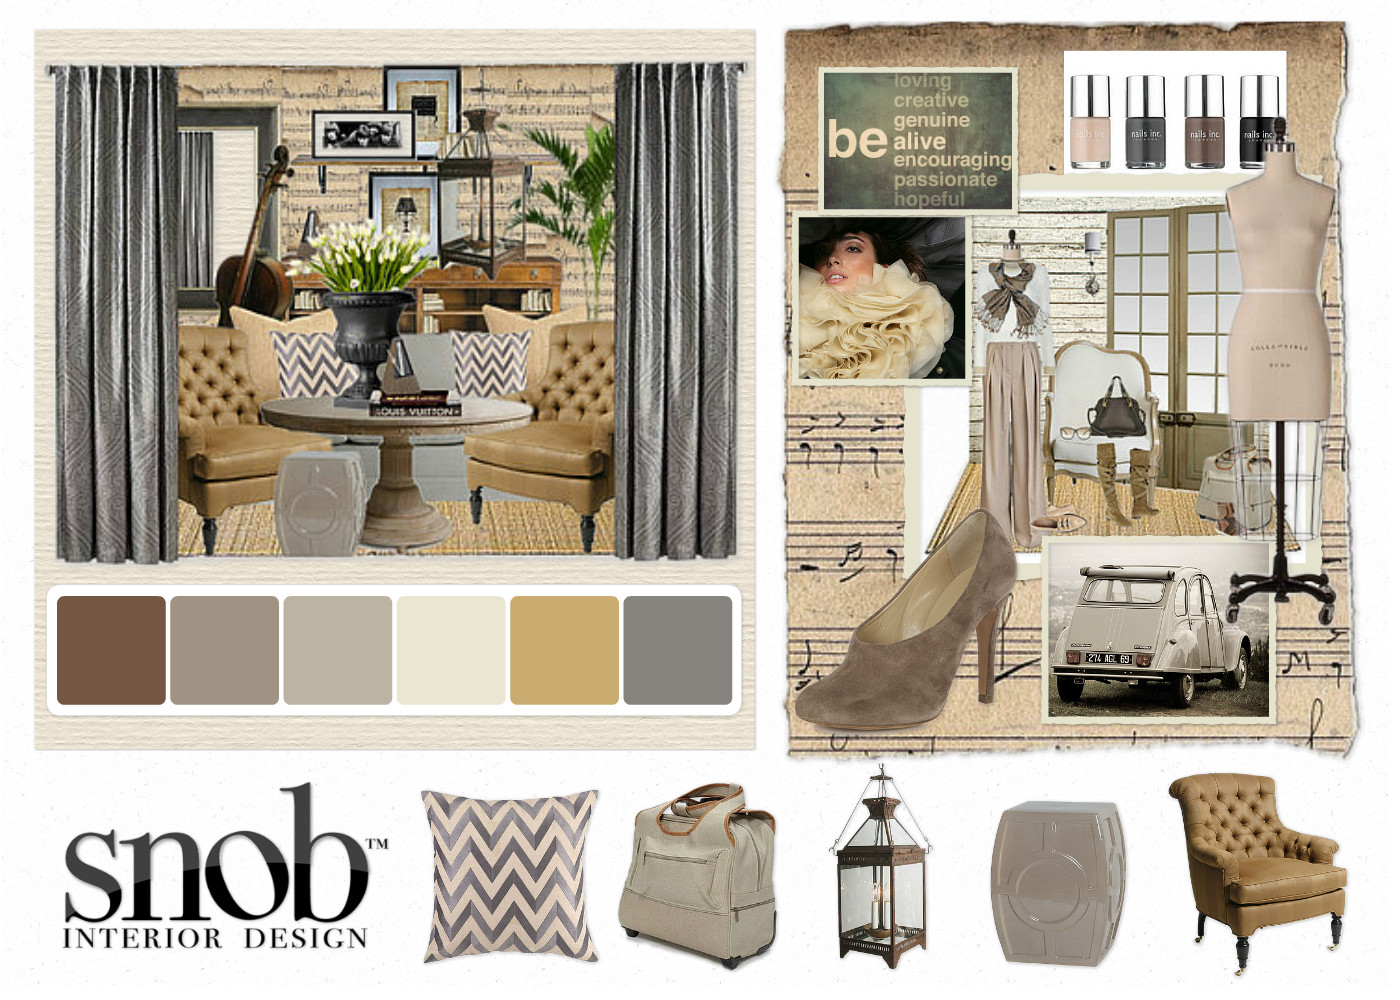 Some Inspiration With A Moodboard, Paint Samples And Accessories To Pull A  Room Together In Your Home.